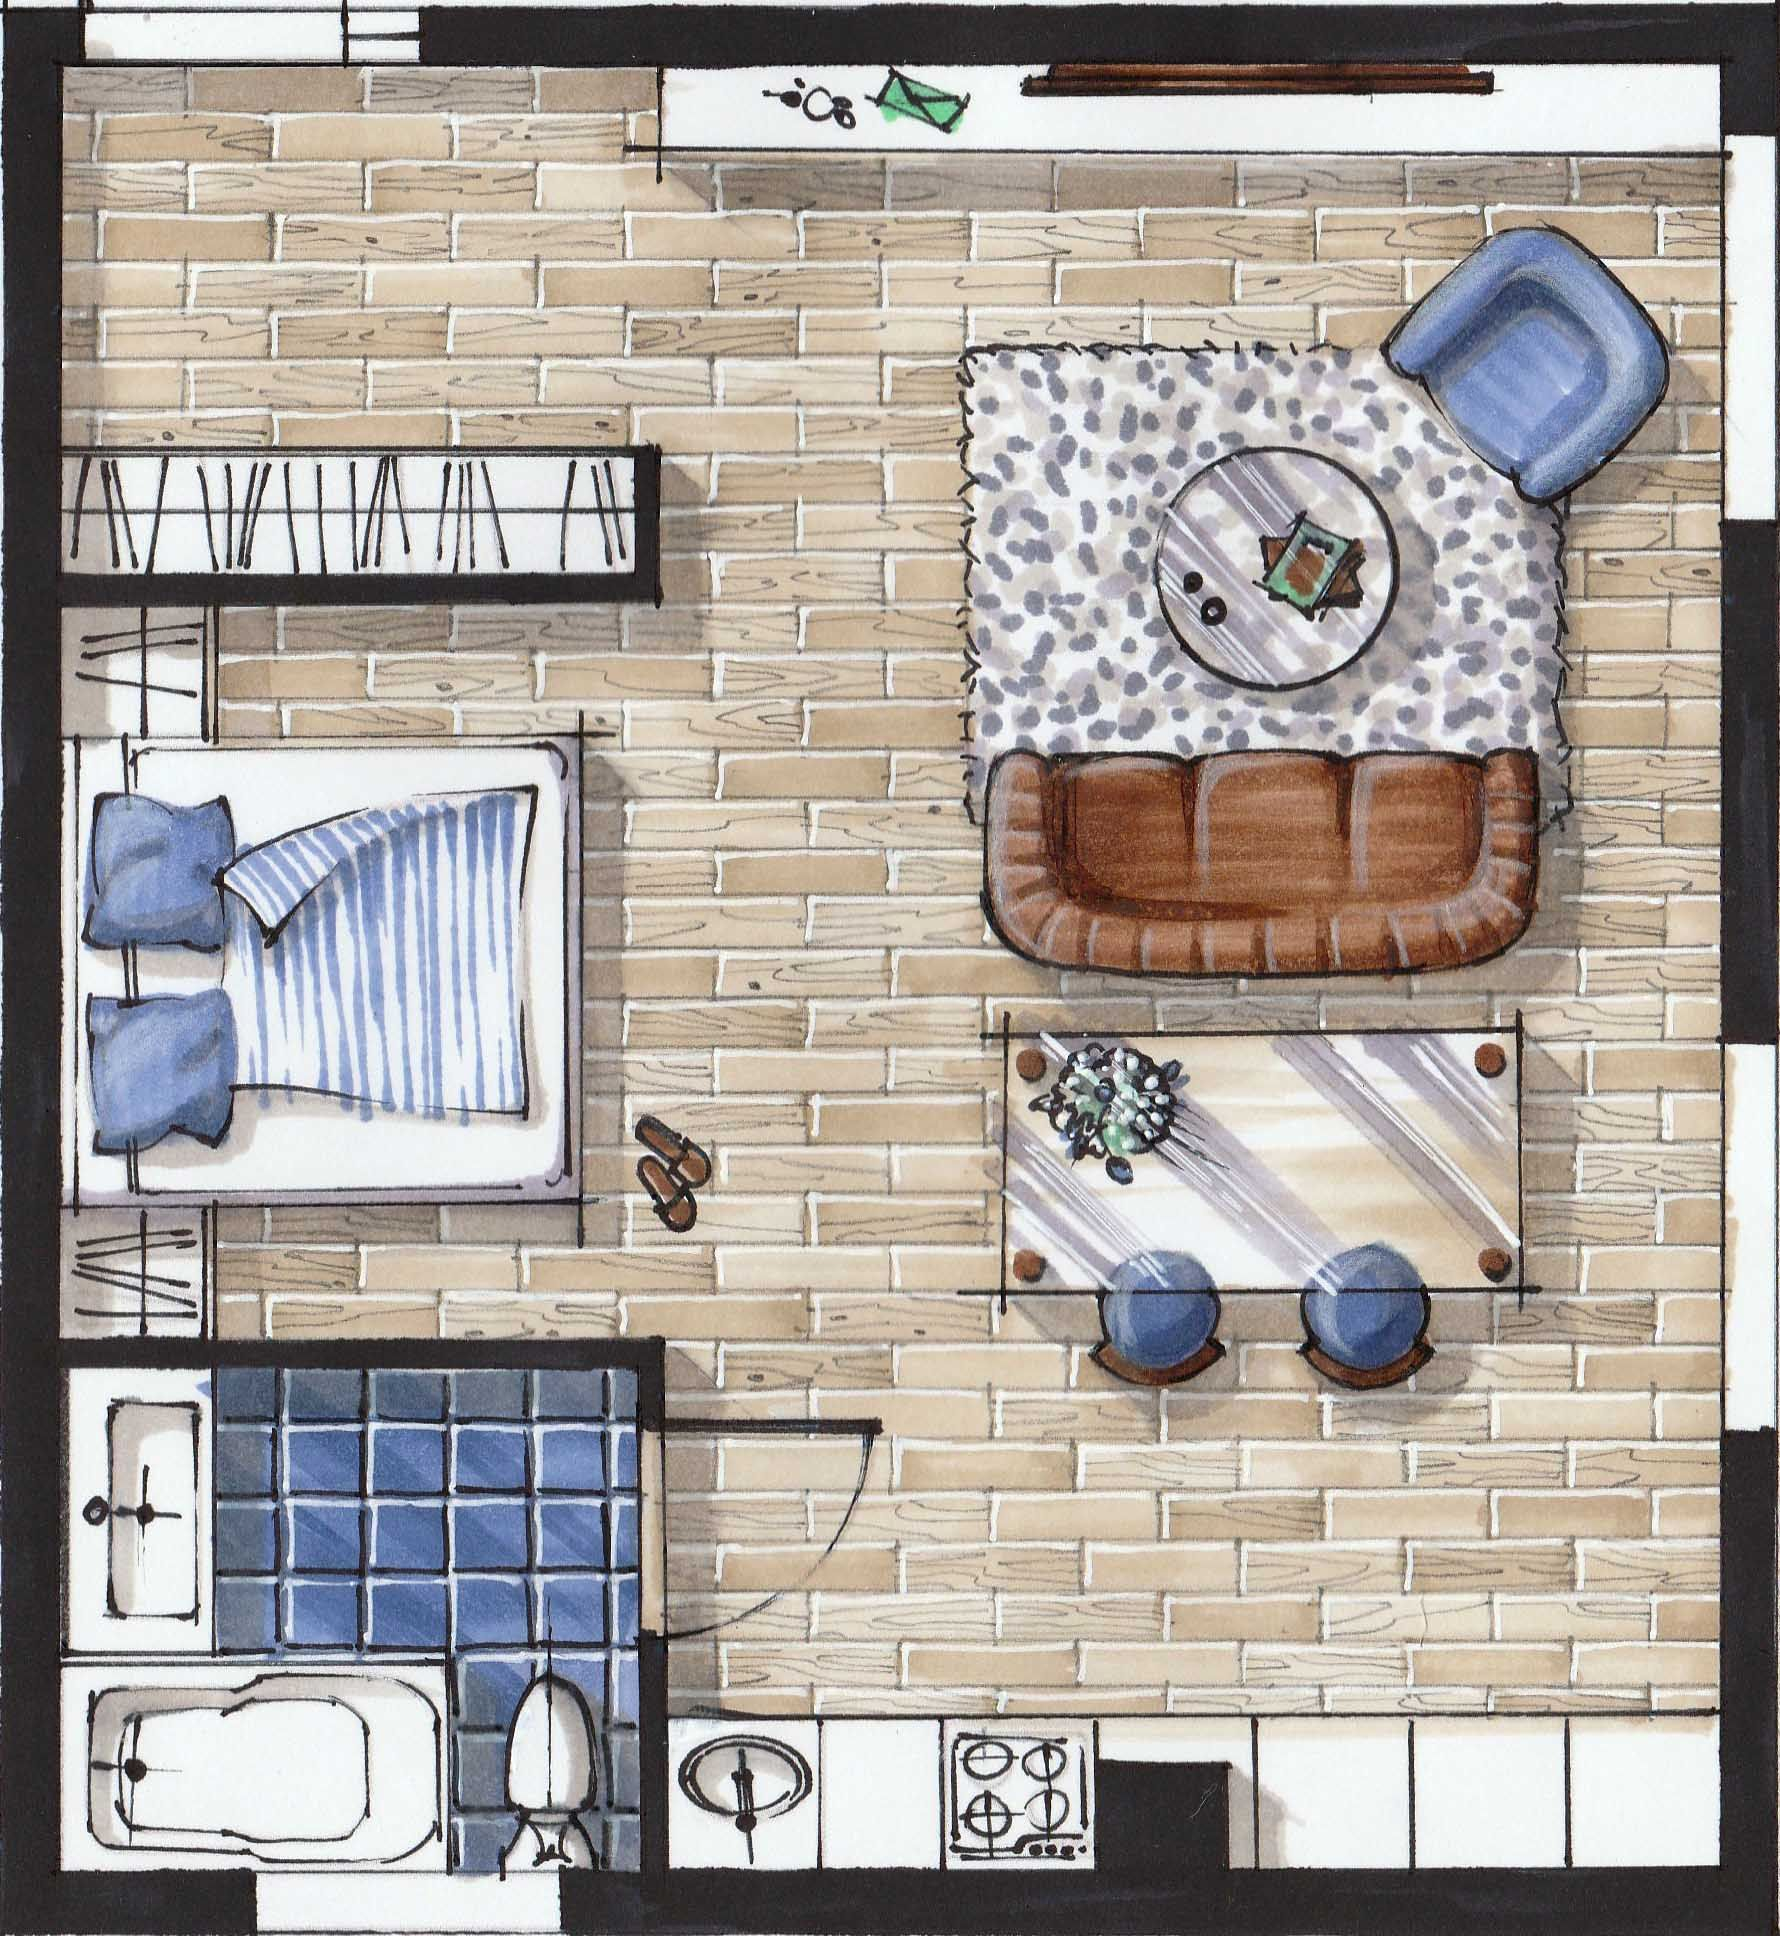 Interior Design Plans: Interior Design Drawing With Markers: My Video Courses